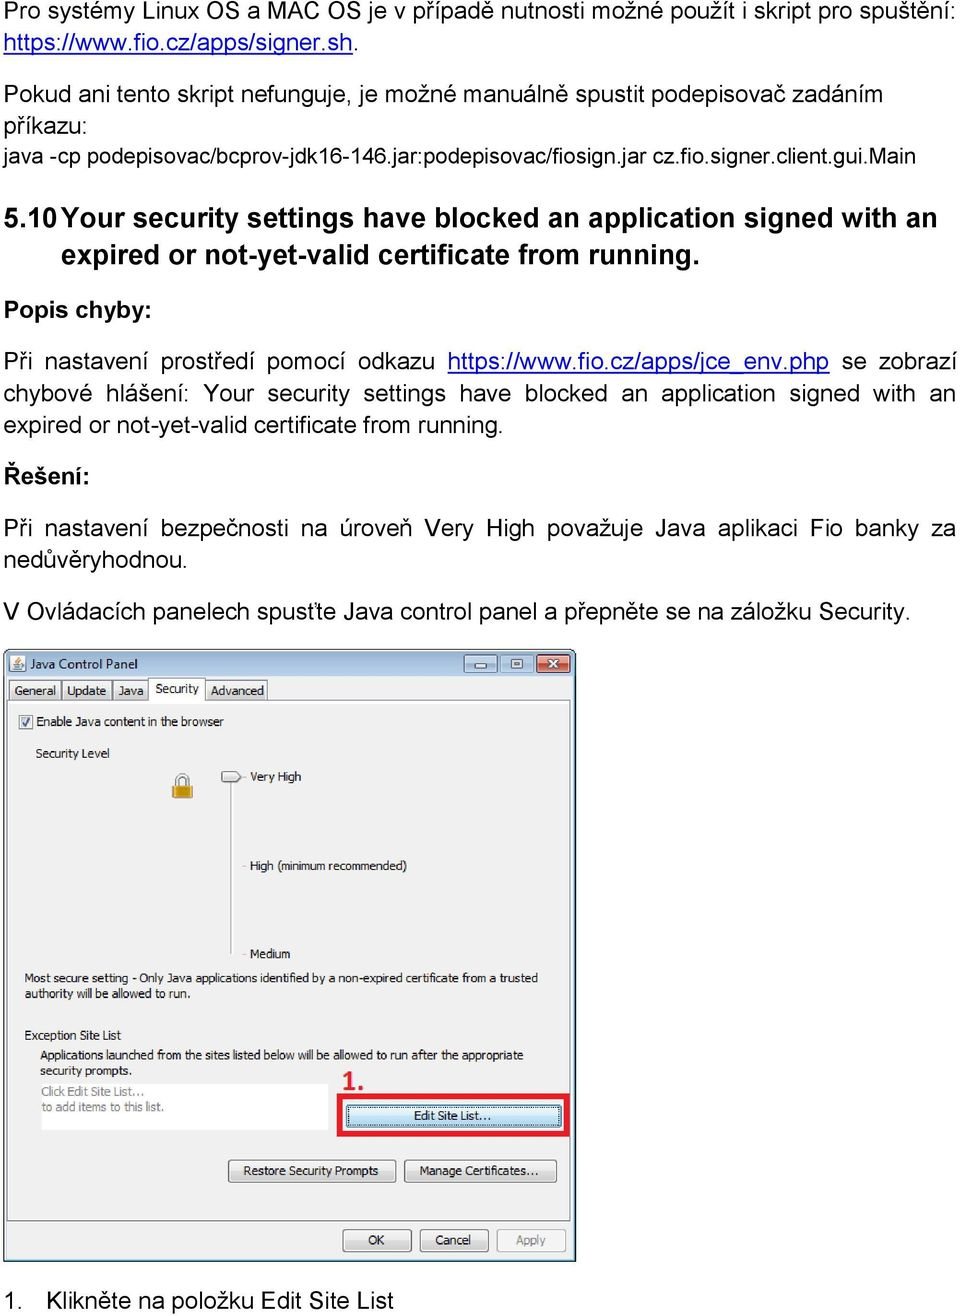 10 Your security settings have blocked an application signed with an expired or not-yet-valid certificate from running. Při nastavení prostředí pomocí odkazu https://www.fio.cz/apps/jce_env.